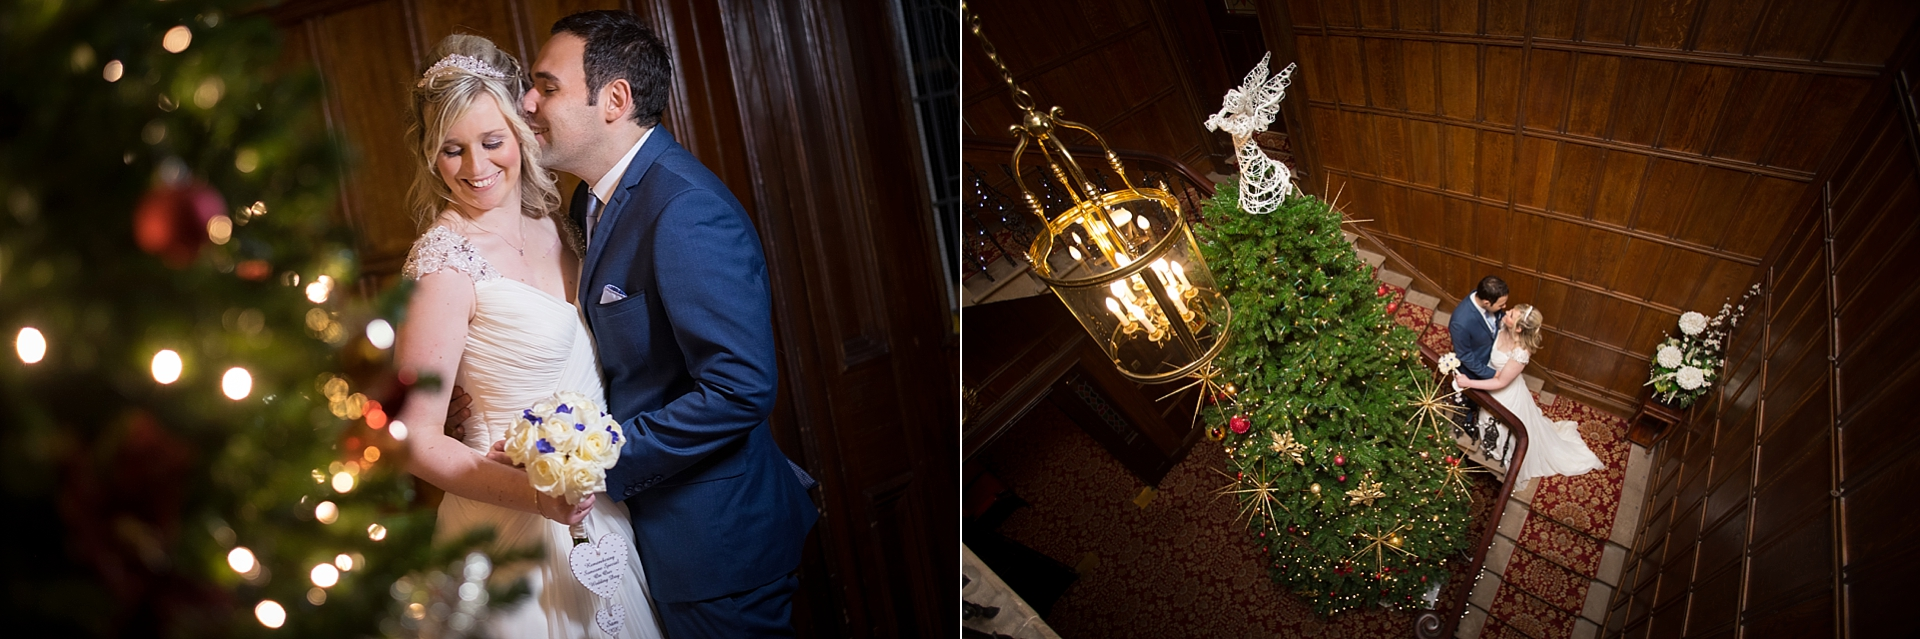 wedding photographer upper house barlaston stoke on trent 8.jpg